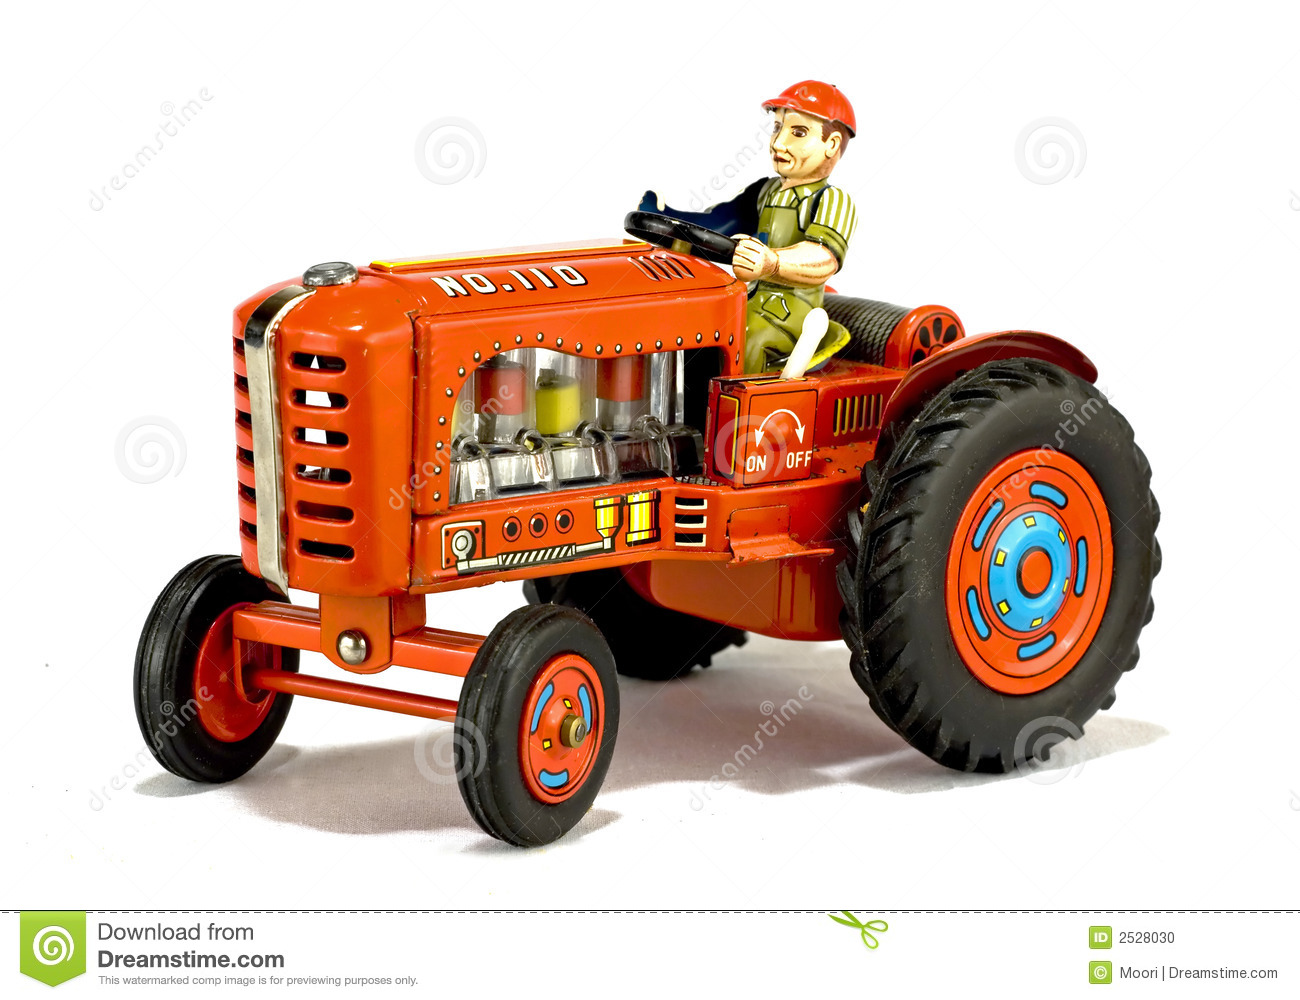 Trat Er Toy : Vintage red tractor toy stock photo image of vehicle